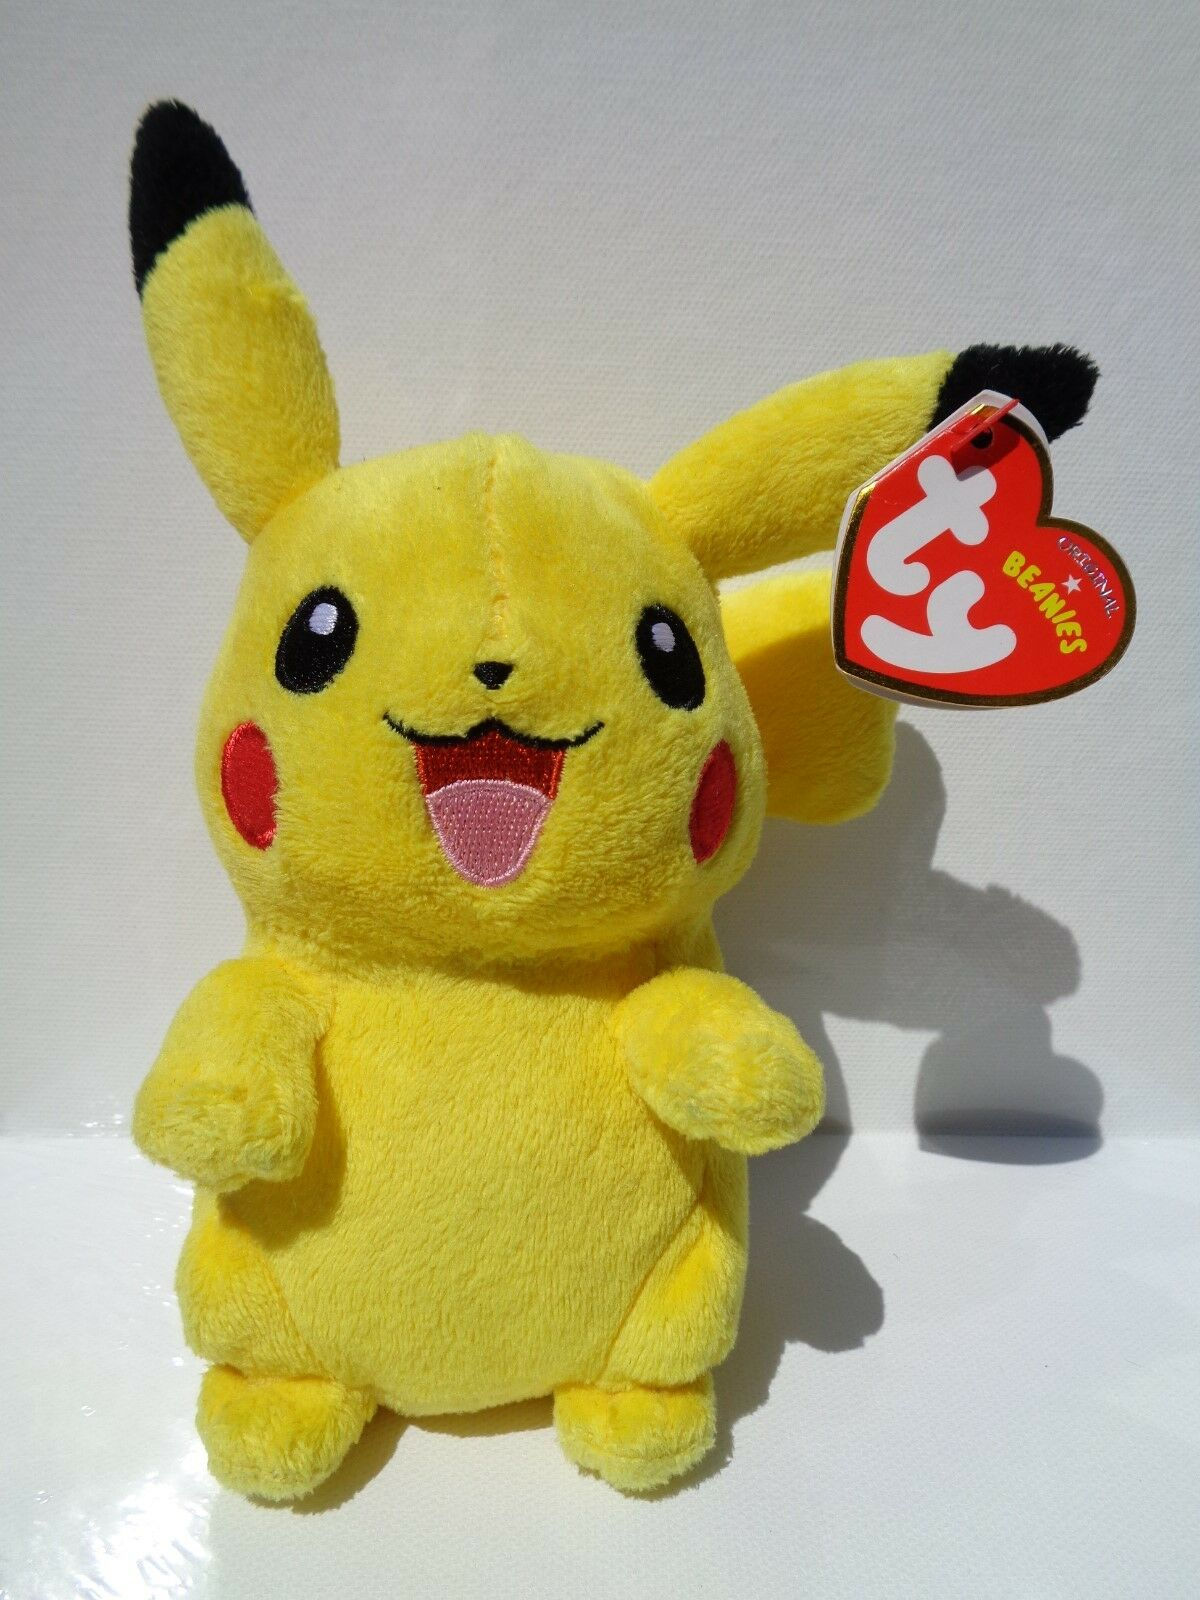 RARE EXCLUSIVE PIKACHU BEANIE BABY, TY, PRISTINE CONDITION WITH MINT TAGS